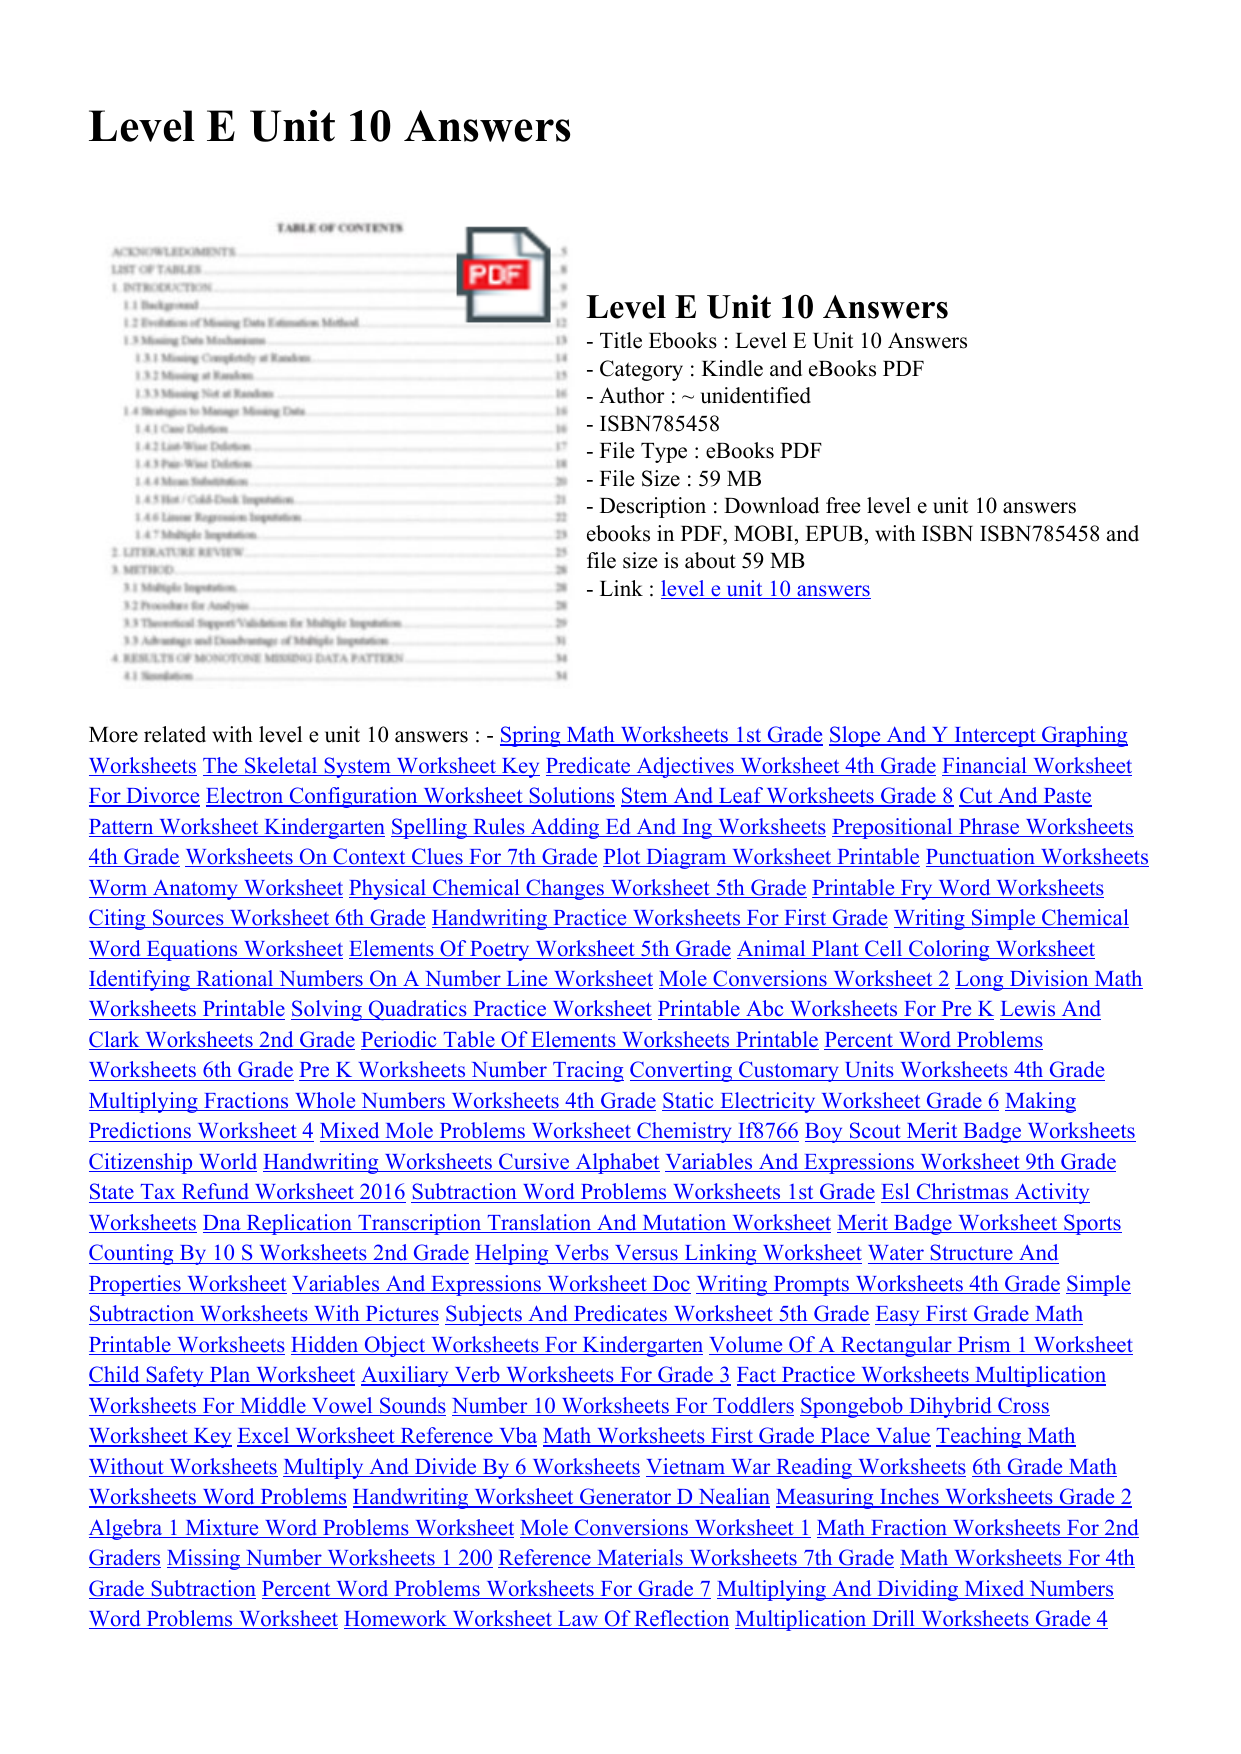 013336750_1 cb9262940c06d3e52d5896f816e378b2png - Periodic Table Of Elements For 5th Grade